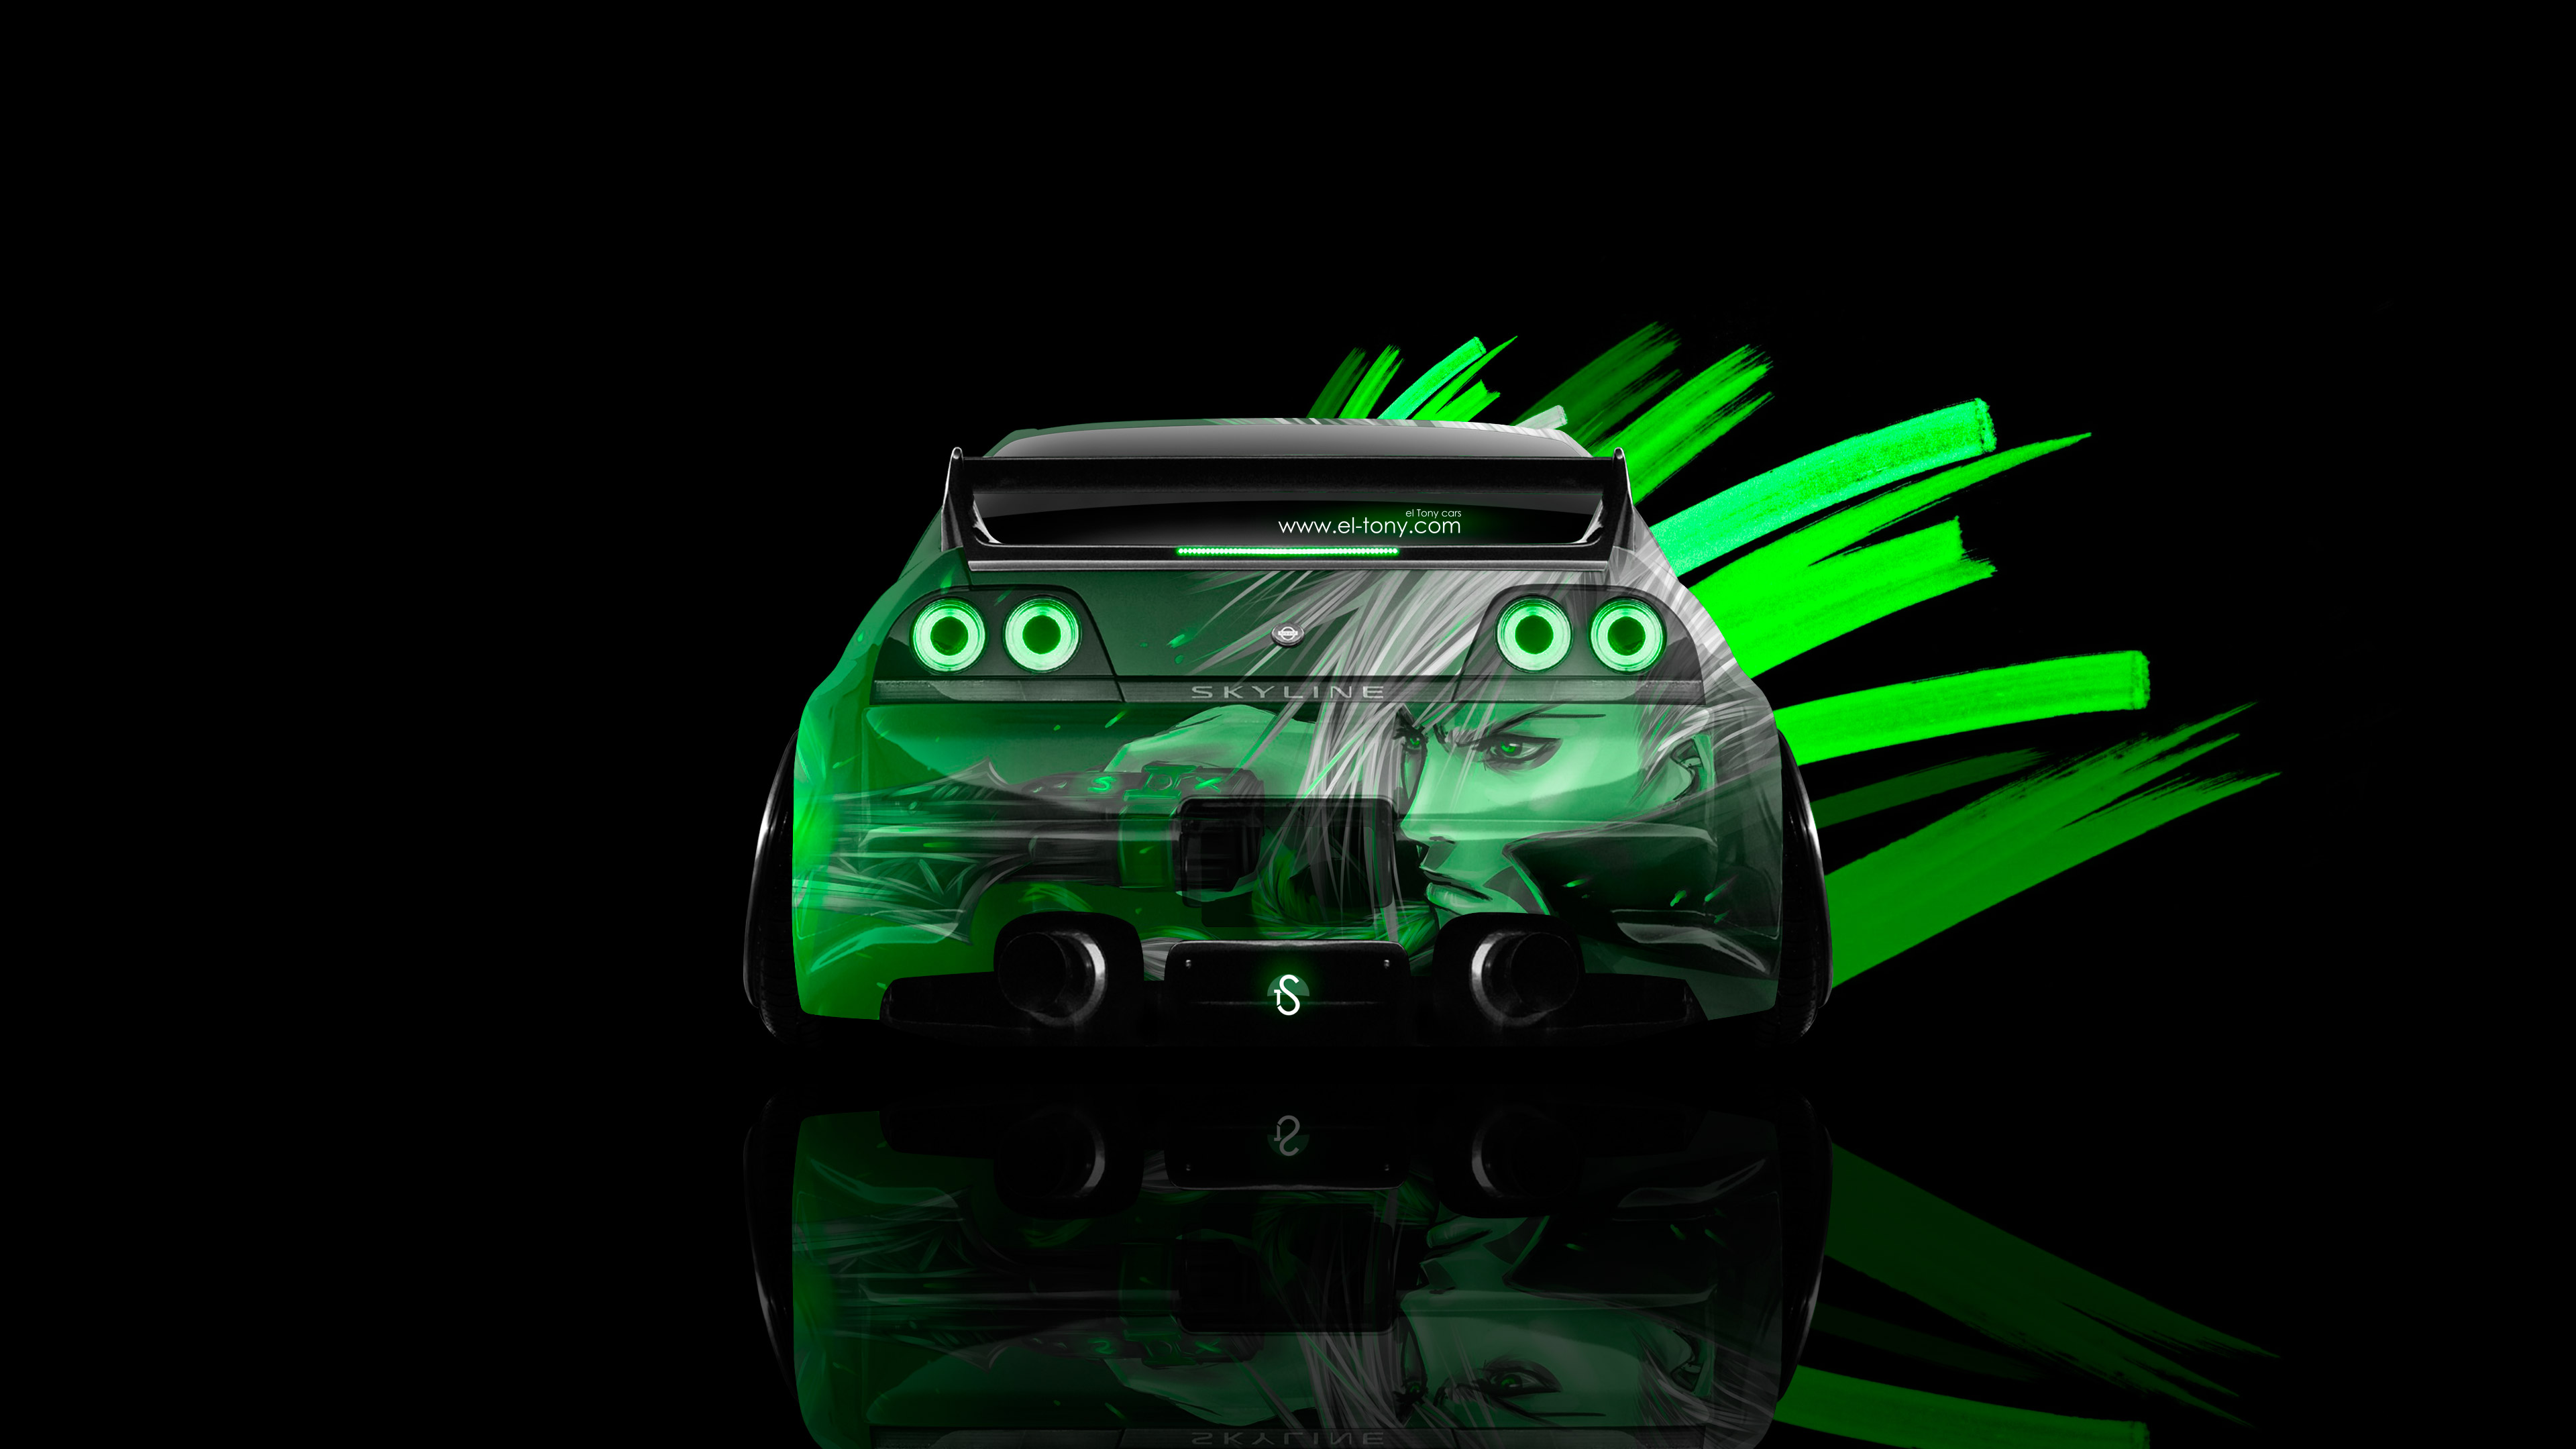 Nissan-Skyline-GTR-R33-Back-Anime-Aerography-Car-2015-Green-Neon-Effects-4K-Wallpapers-design-by-Tony-Kokhan-[www.el-tony.com]